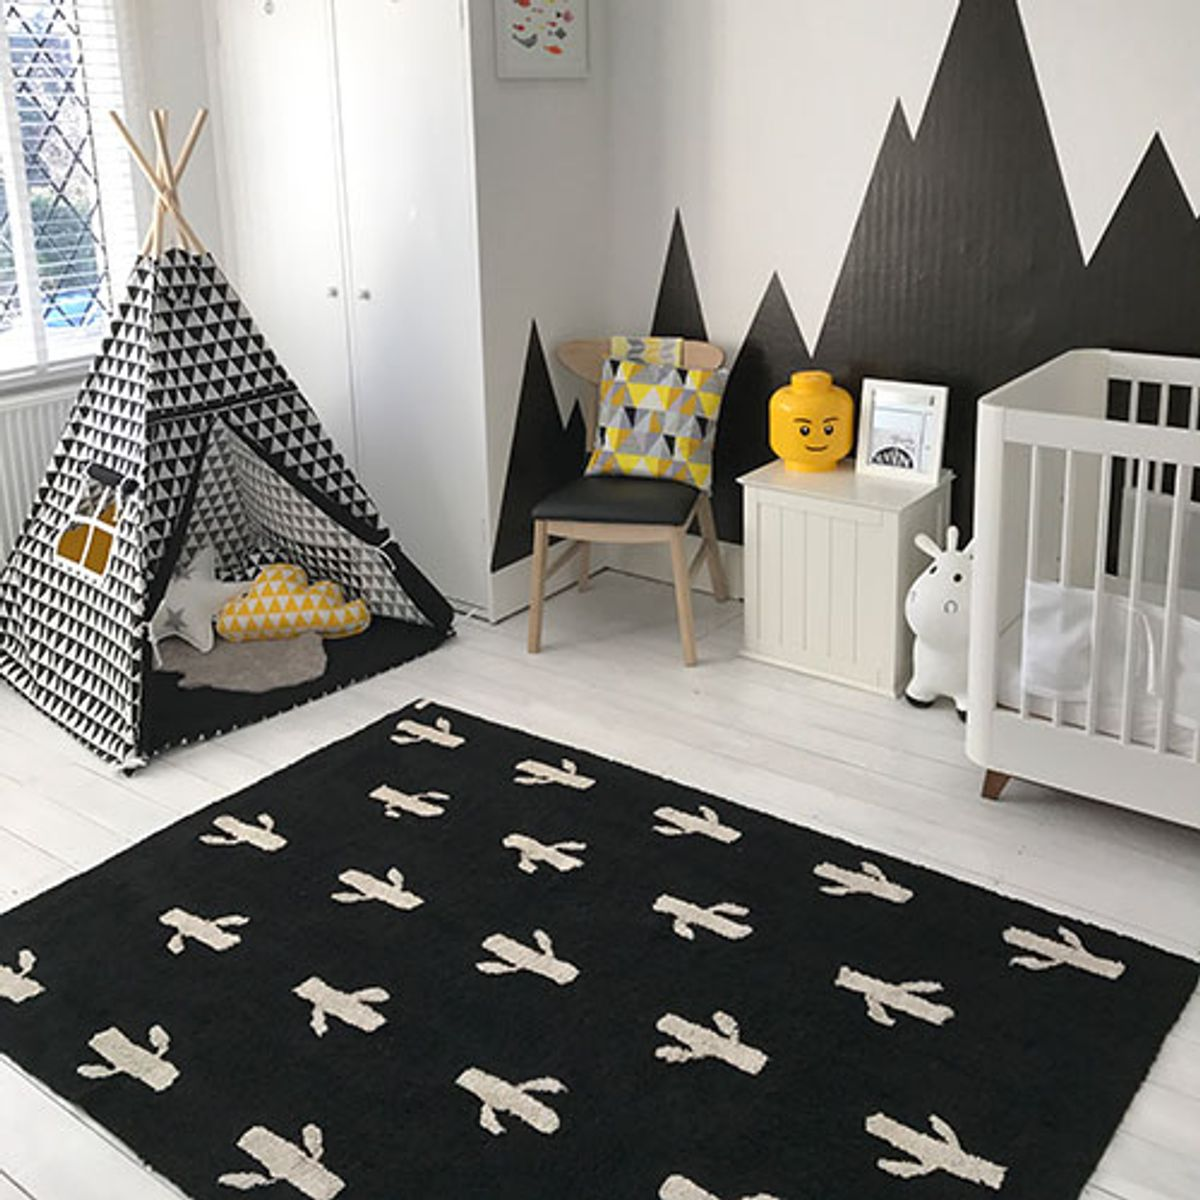 tapis enfant en coton noir et imprim blanc cactus lorena canals decoclico. Black Bedroom Furniture Sets. Home Design Ideas